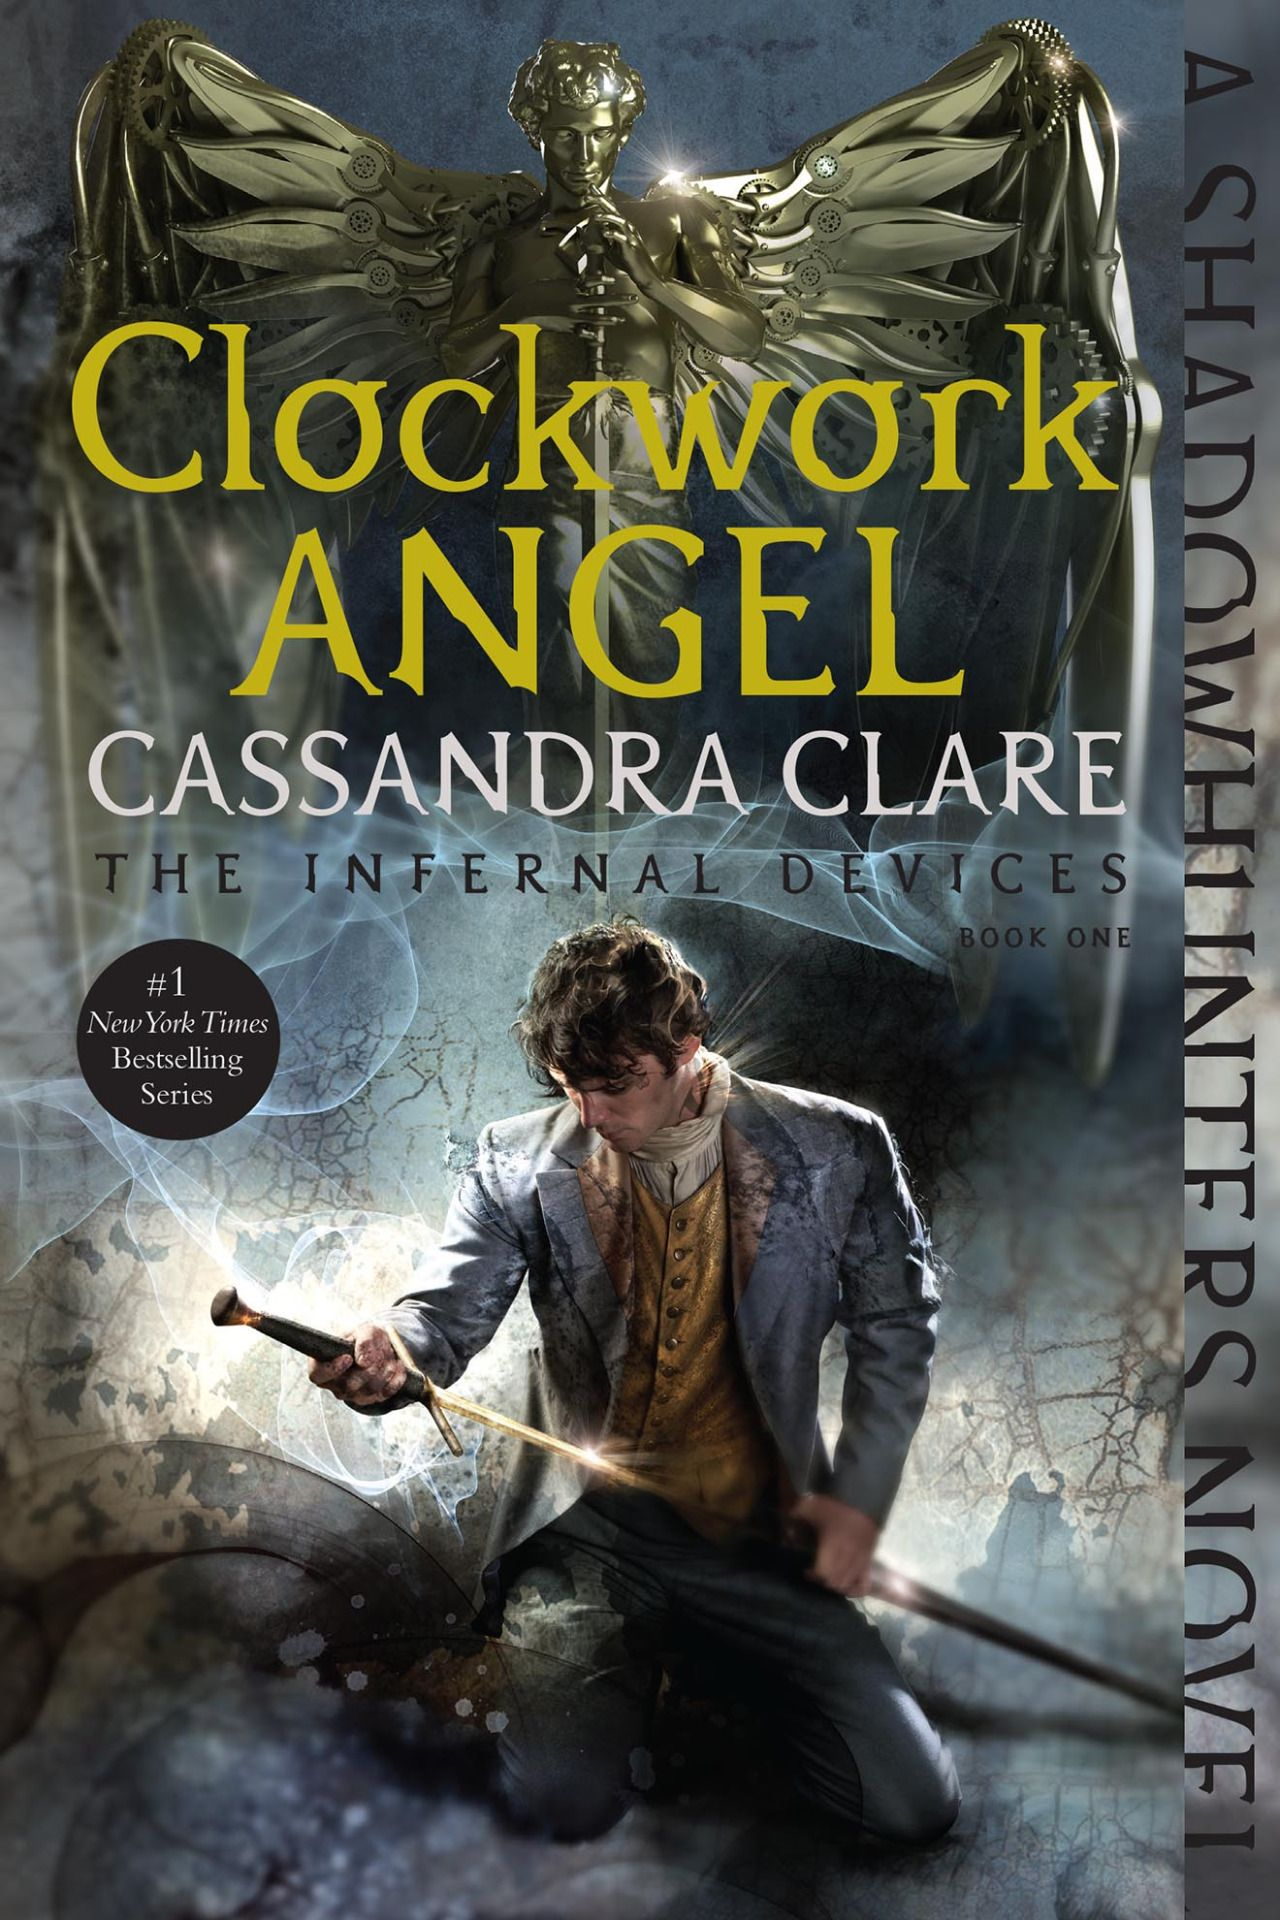 New Covers For The Infernal Devices: Clockwork Angel By Cassandra Clare,  Featuring William Herondale